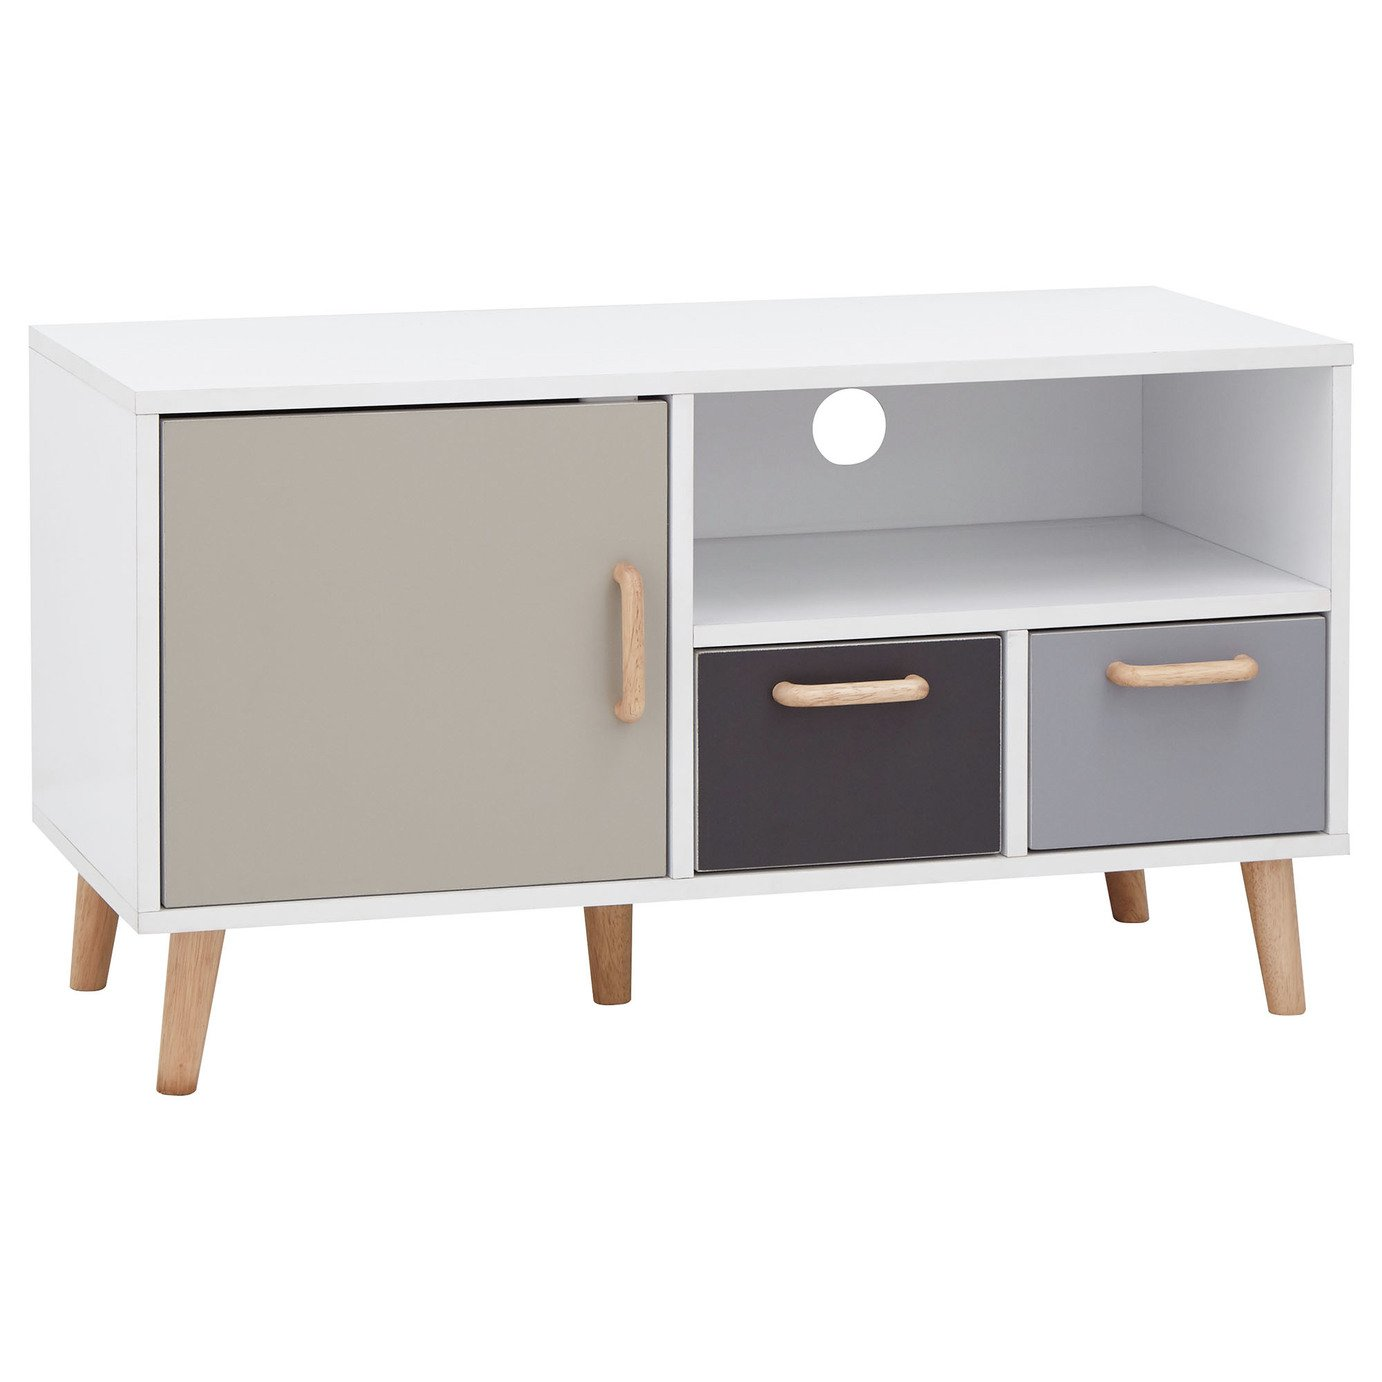 Delta 1 Door 2 Drawer Small TV Unit - Grey & White